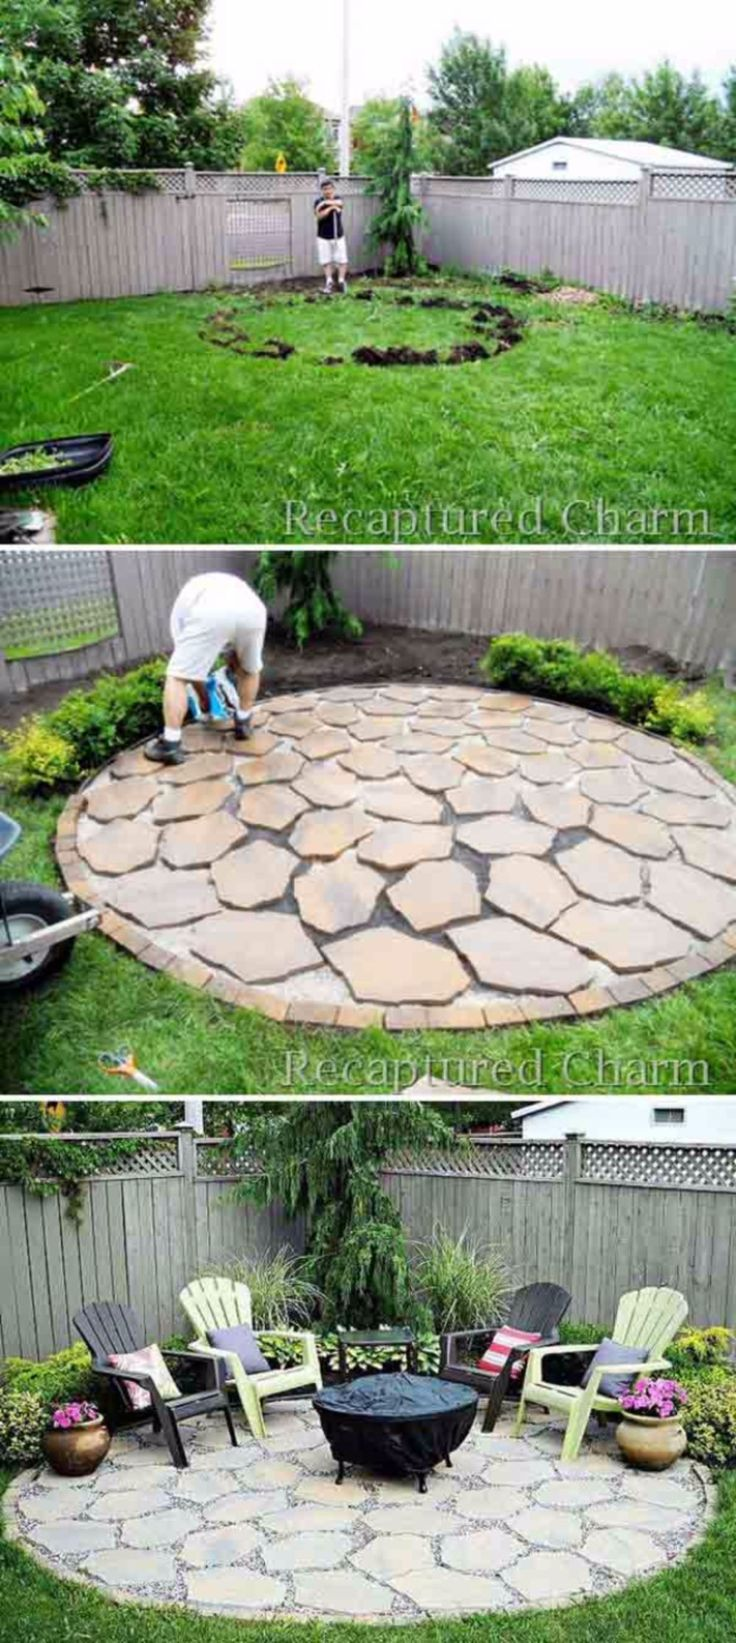 Awesome 30 diy patio ideas on a budget httpswartaku201705 awesome 30 diy patio ideas on a budget httpswartaku2017052730 diy patio ideas budget for the home pinterest diy patio patios and solutioingenieria Image collections